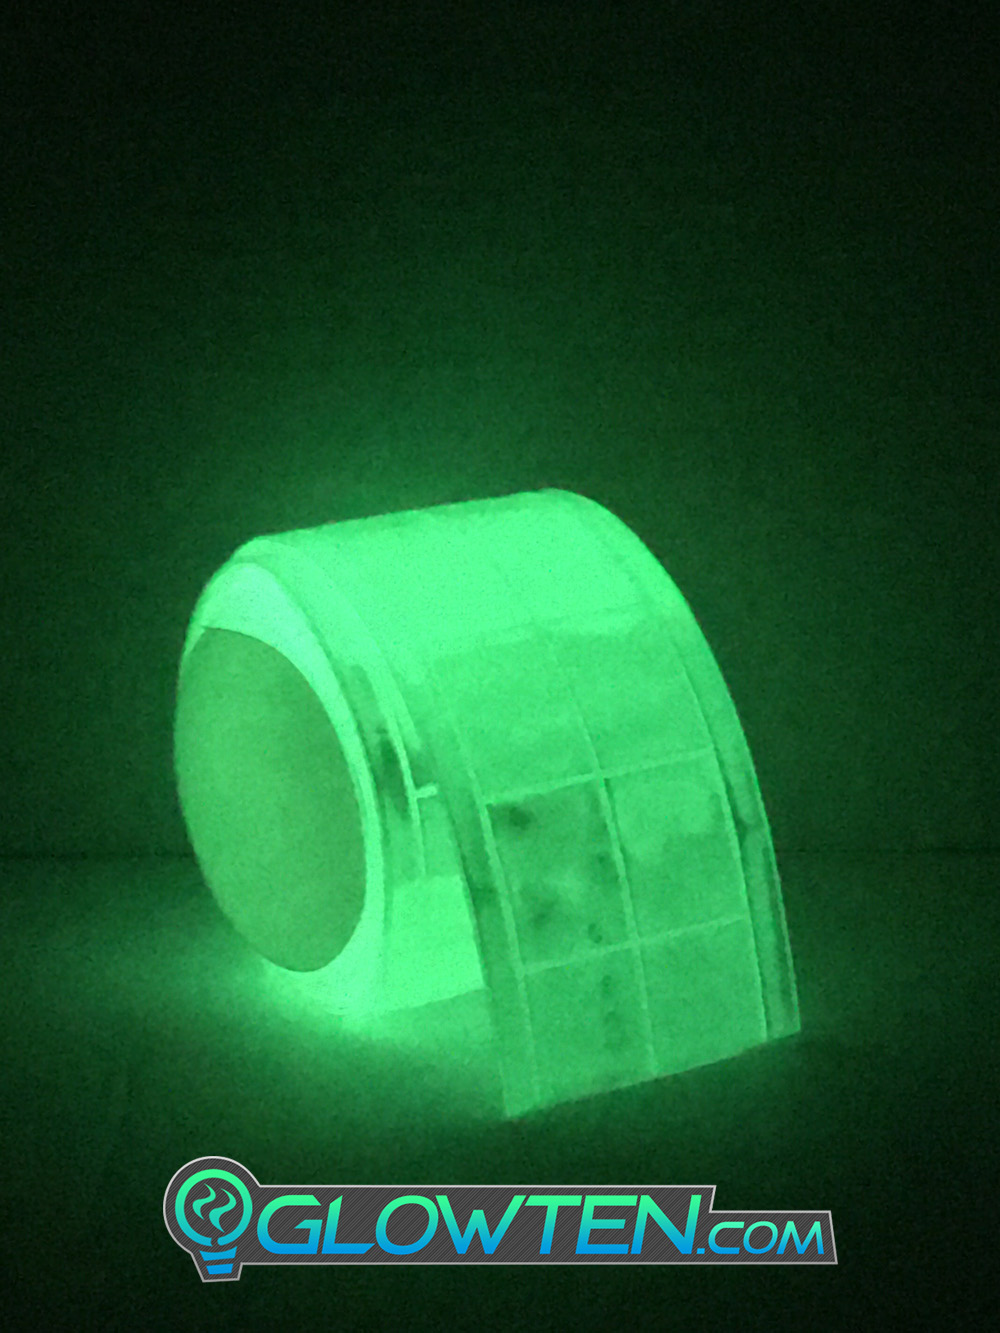 GLOWTEN.com - What Is The Best Glow In The Dark Tape LUMINOUS Band Glow in the Dark See Better At Night Safety Hazard Cycling Reflective High-Visibility Band Biking at Night Bicycle picture photo cap preview pic image search 2